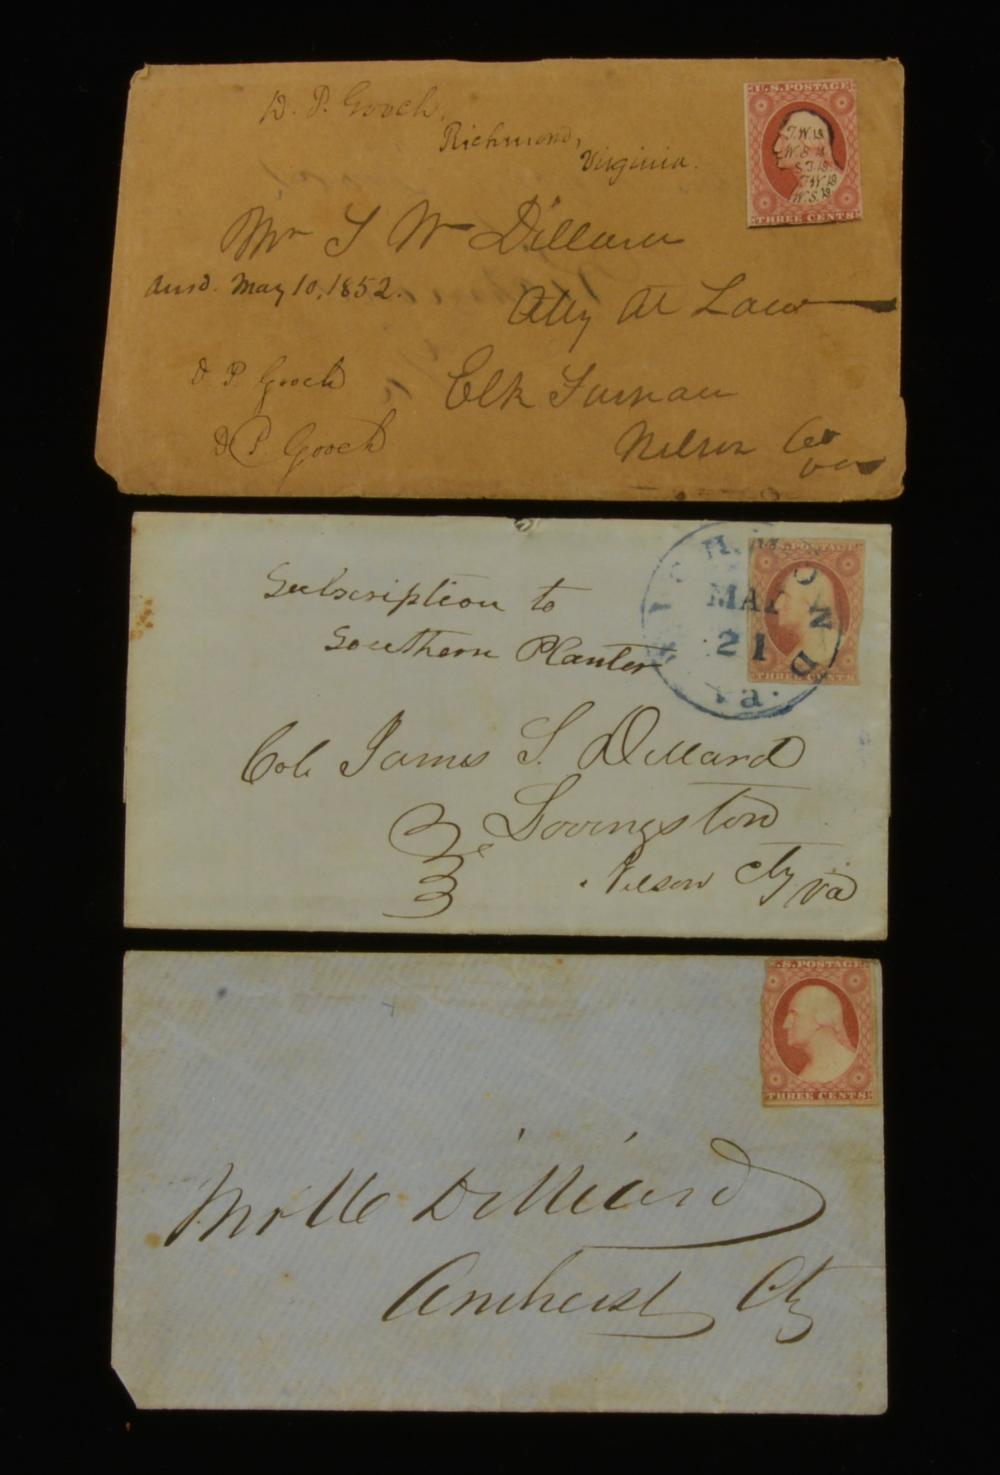 1850s Three Cent Washington Stamp Richmond Va. Dillard Family Covers